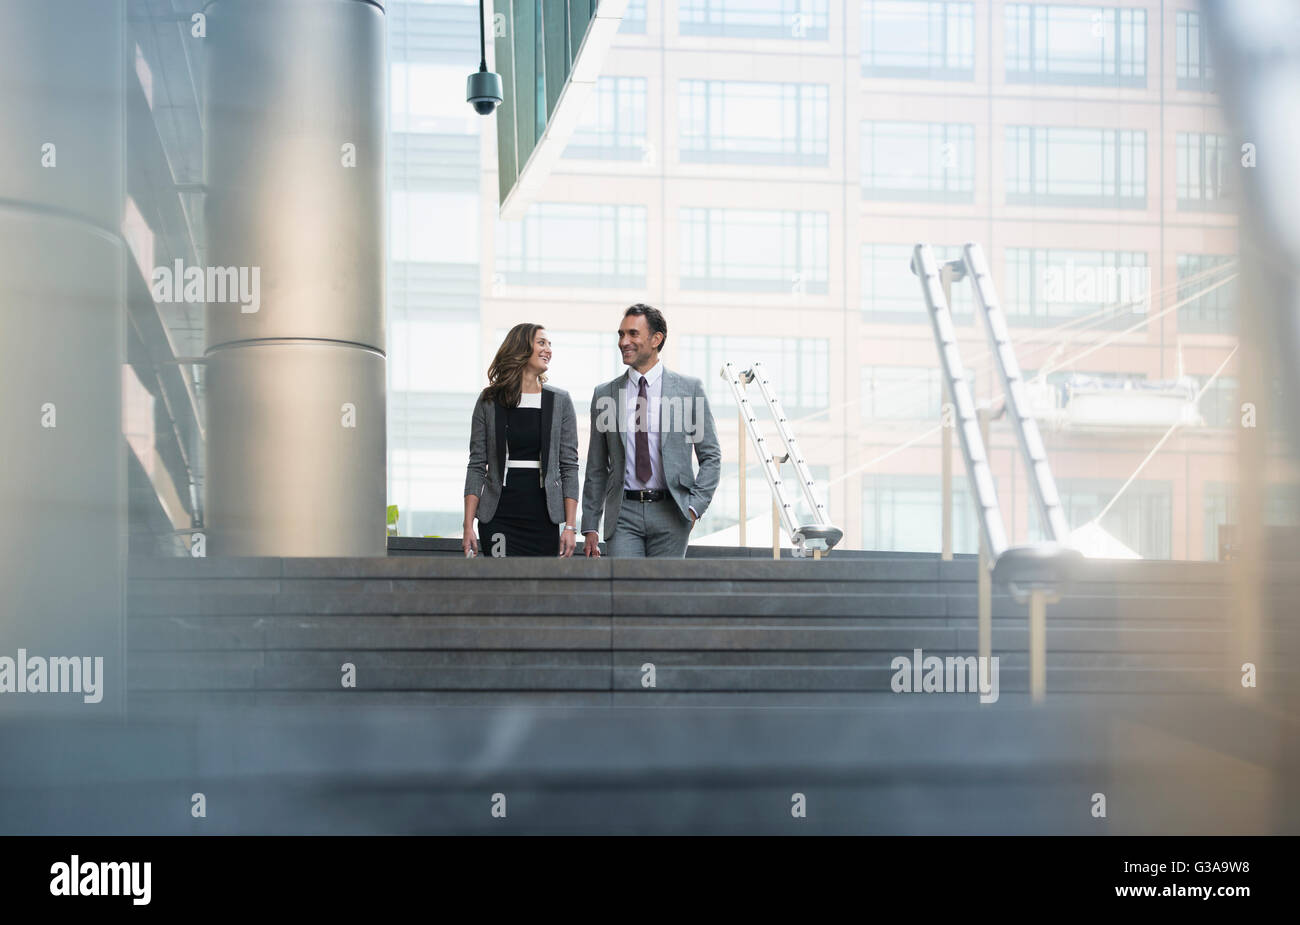 Corporate businessman and businesswoman descending stairs outdoors - Stock Image